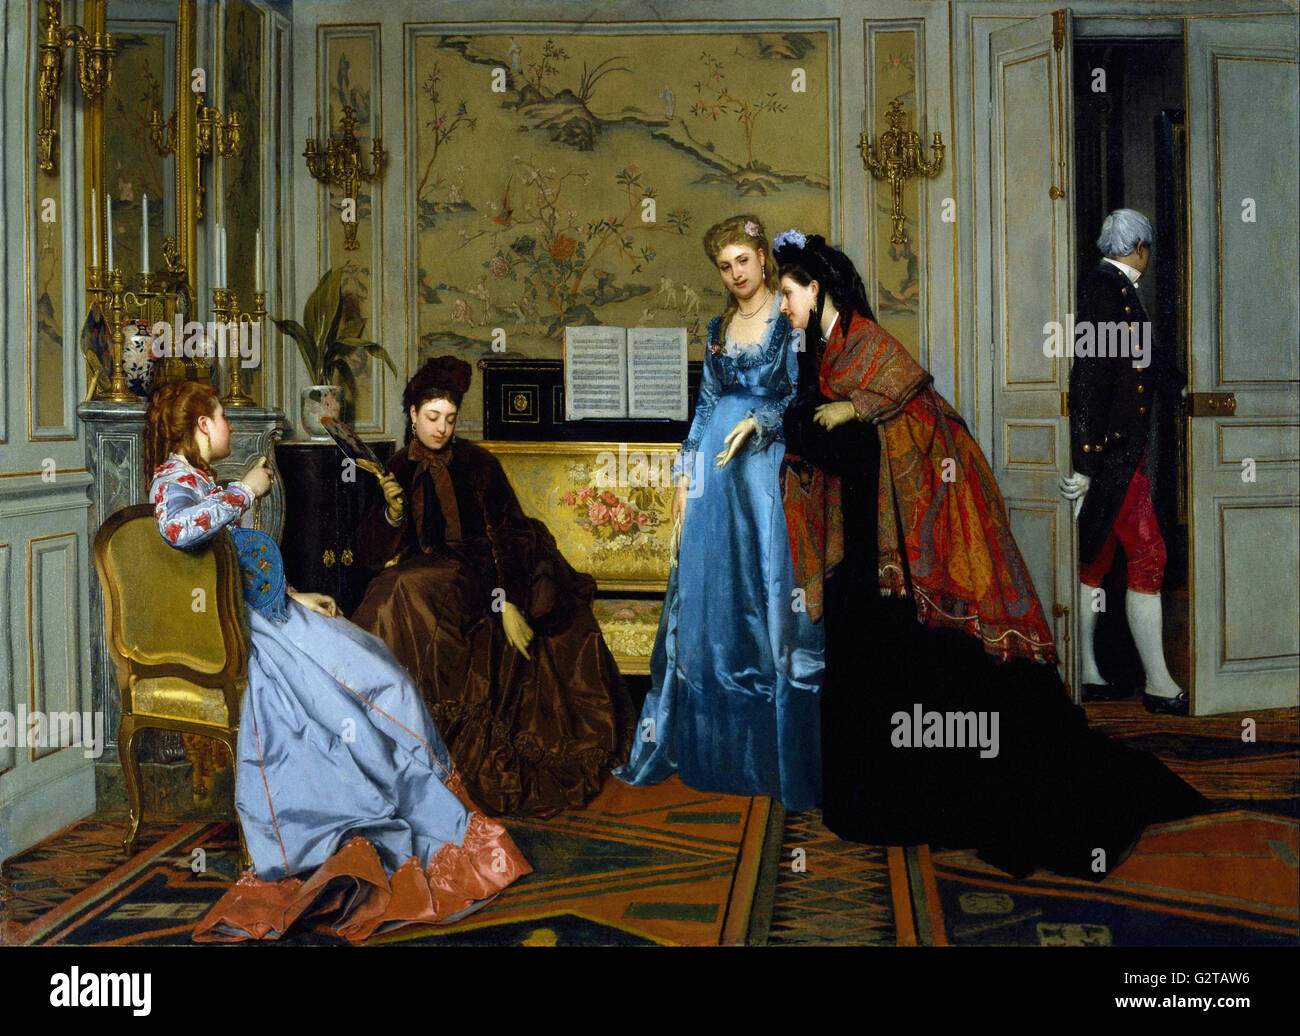 Attributed to Alfred Stevens - Elegant Figures in a Salon - - Stock Image